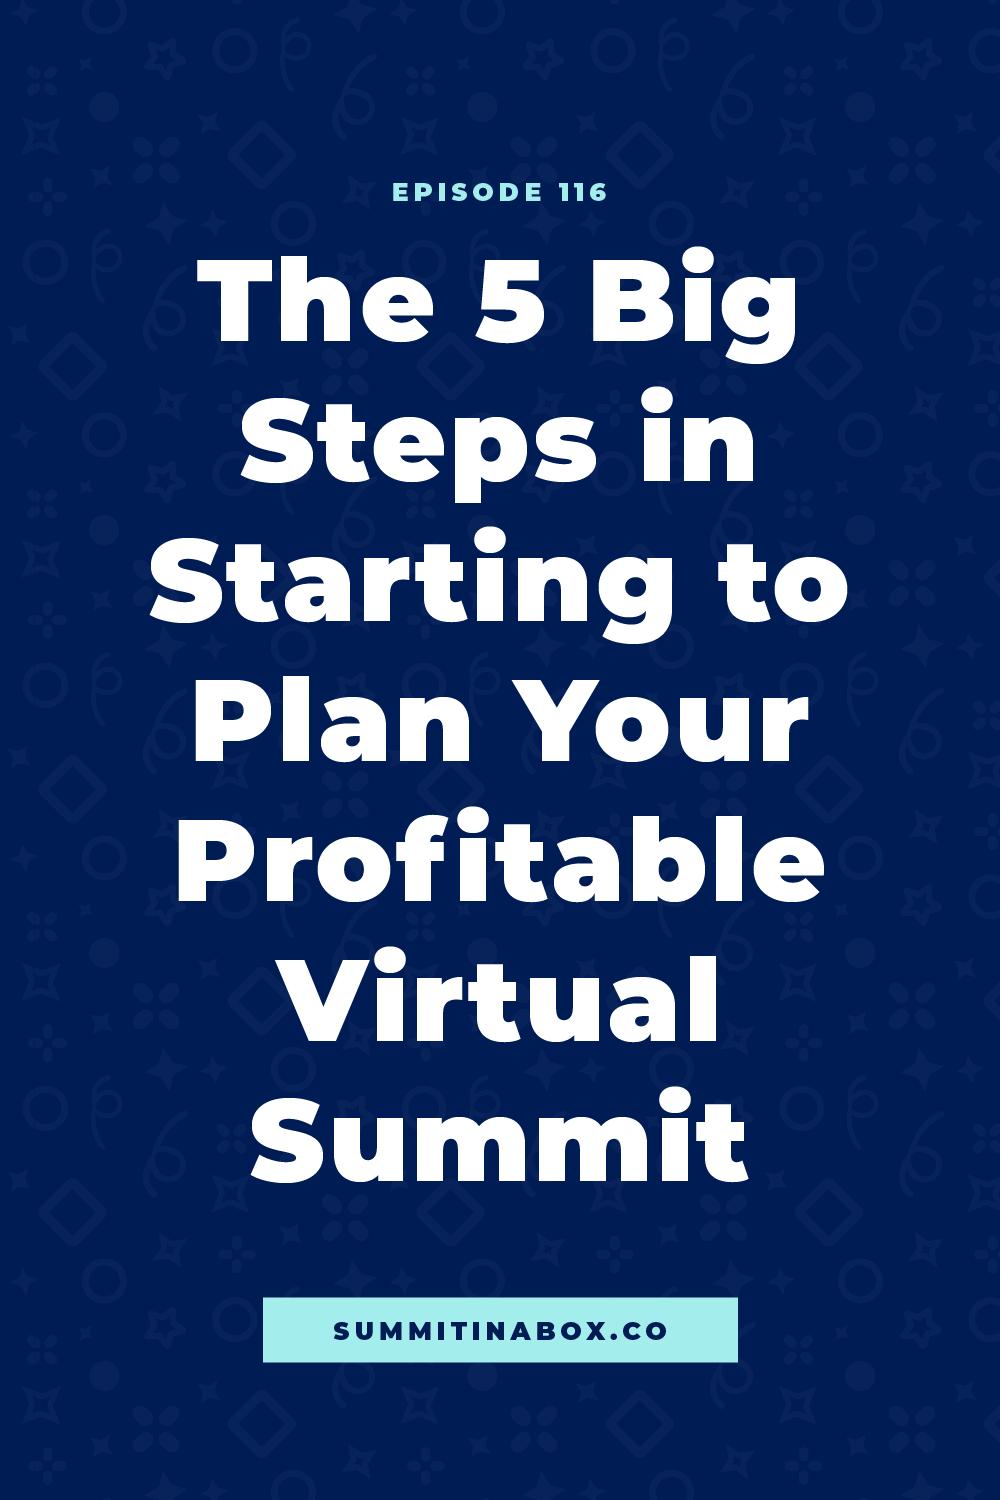 Anyone can decide to host a virtual summit, but that doesn't mean it will work. Let's cover the 5 steps you need to take to plan your profitable virtual summit.